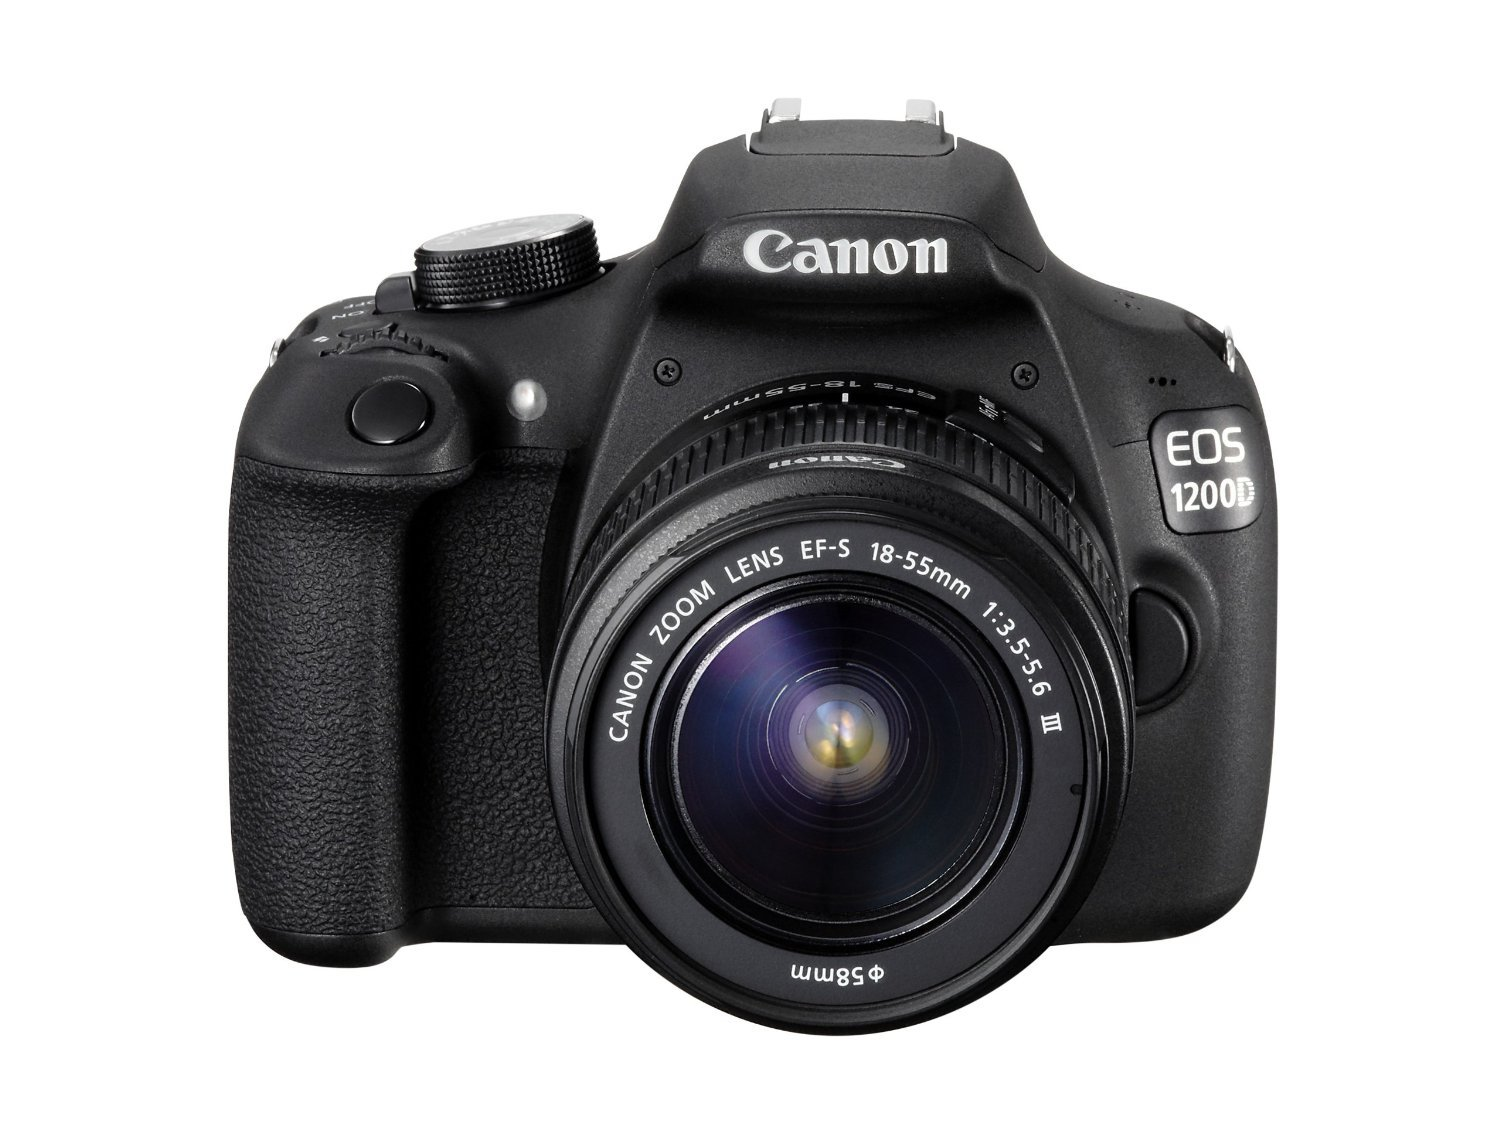 Lowest Price For Canon Digital SLR Camera At Rs 22,949 - EOS 1200D 18MP